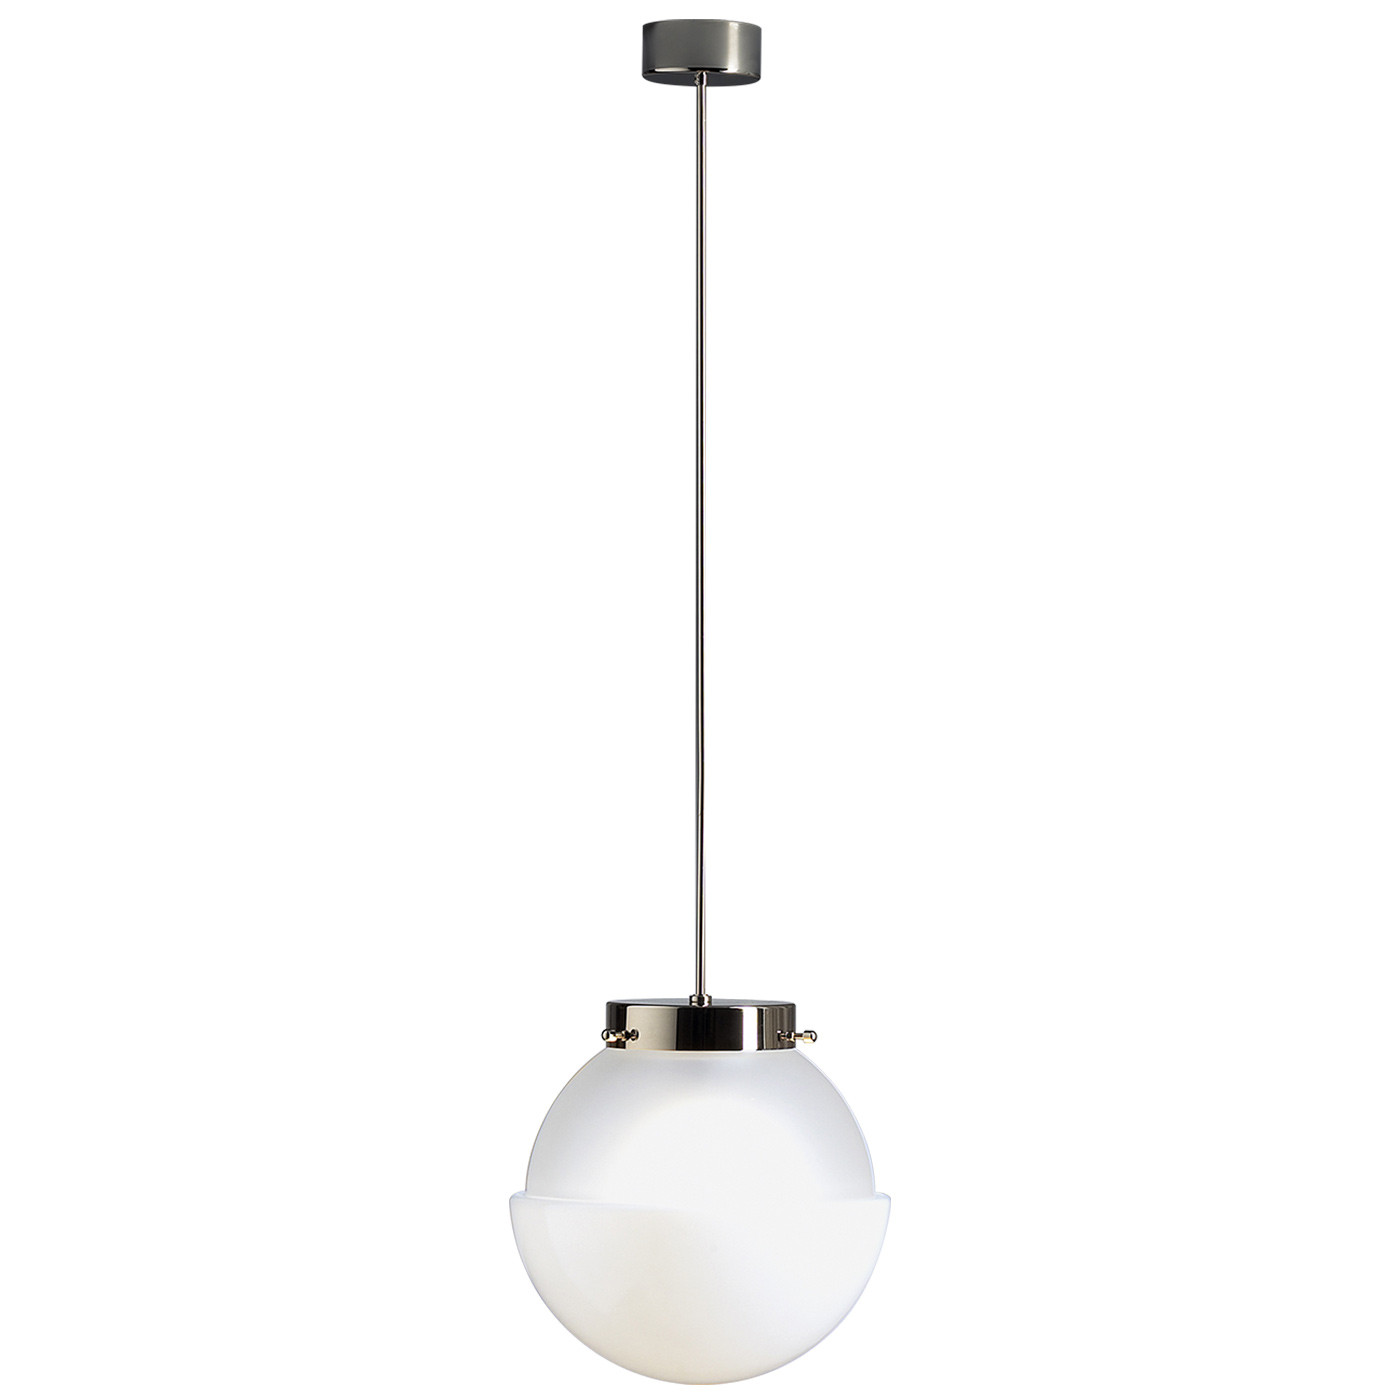 Tecnolumen HMB 29 400 Pendant Light at Nostraforma